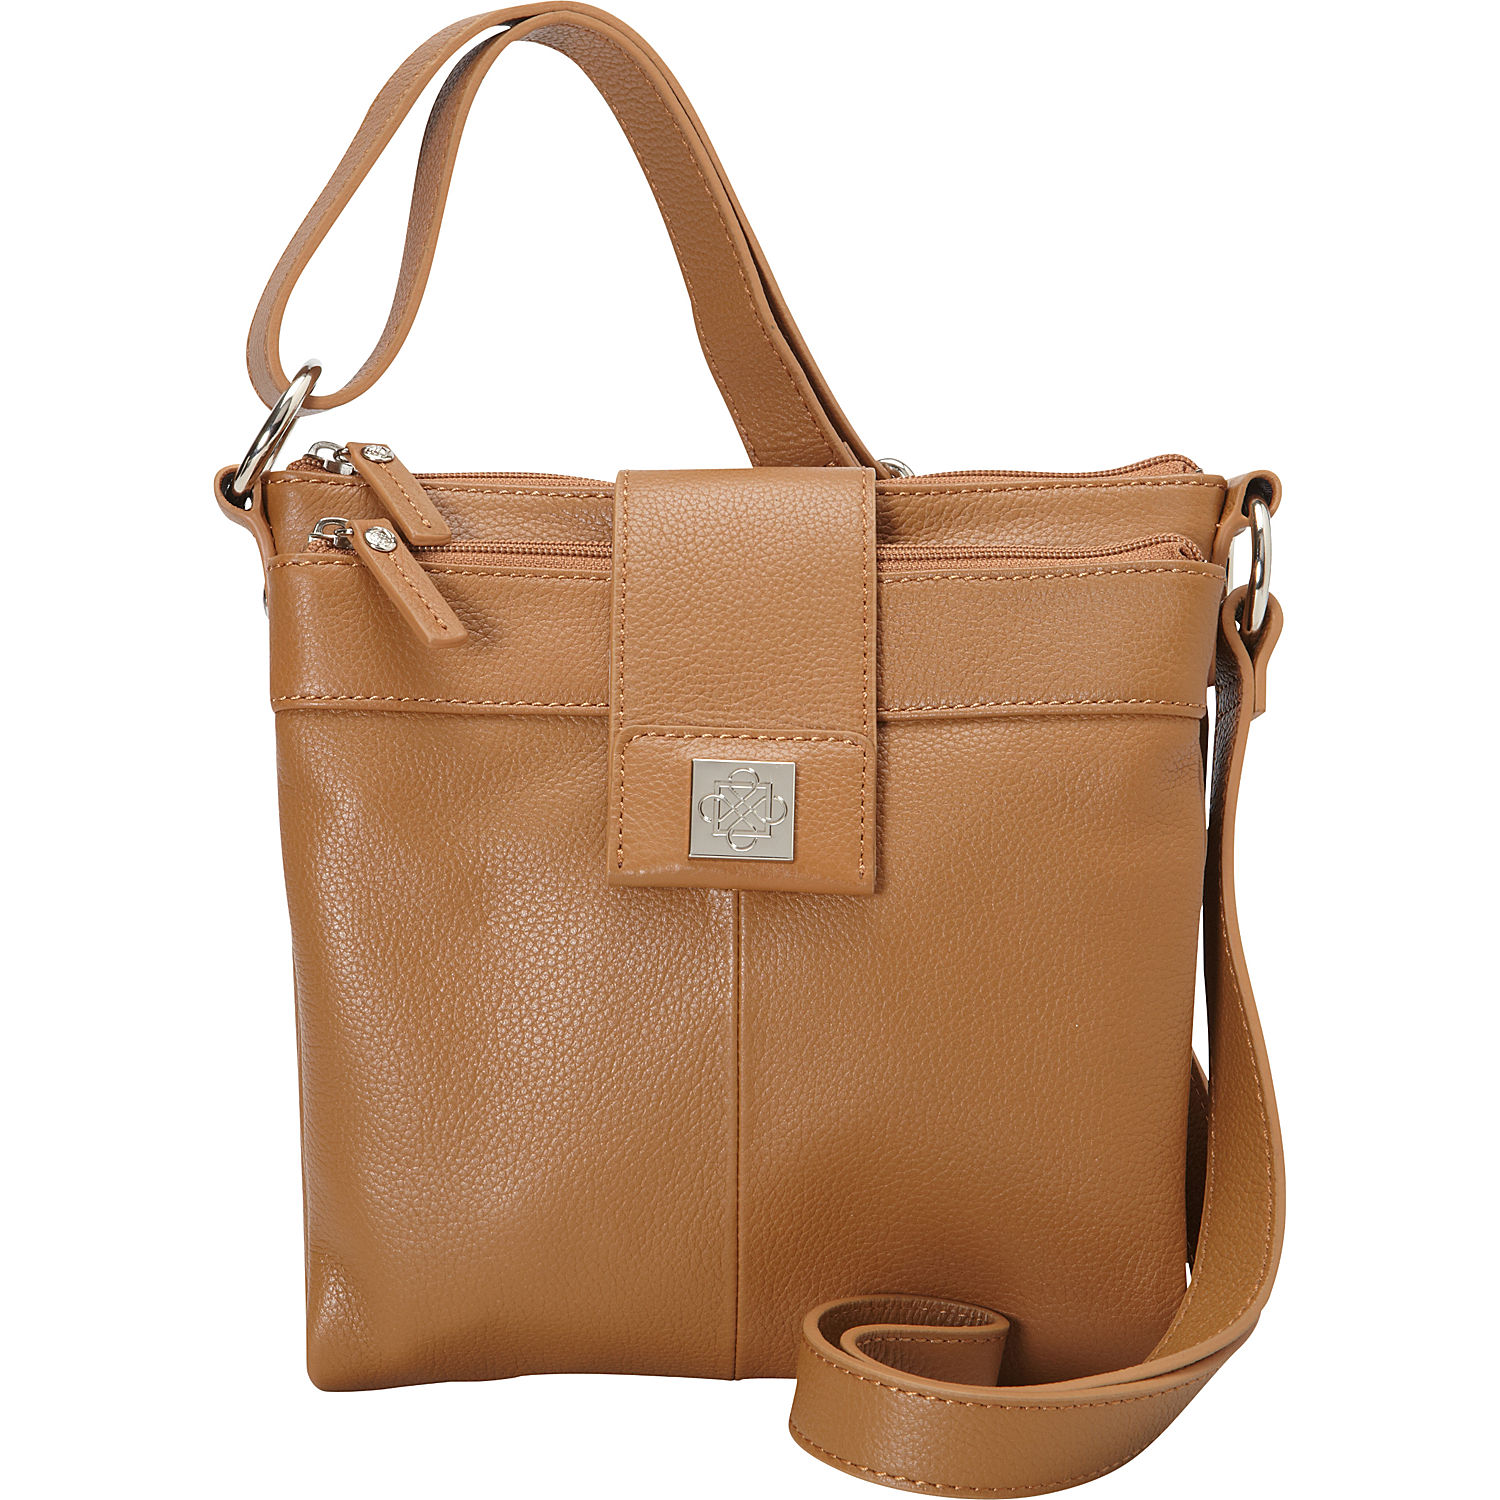 hermes mens bag - Tan Leather Handbags and Purses - eBags.com